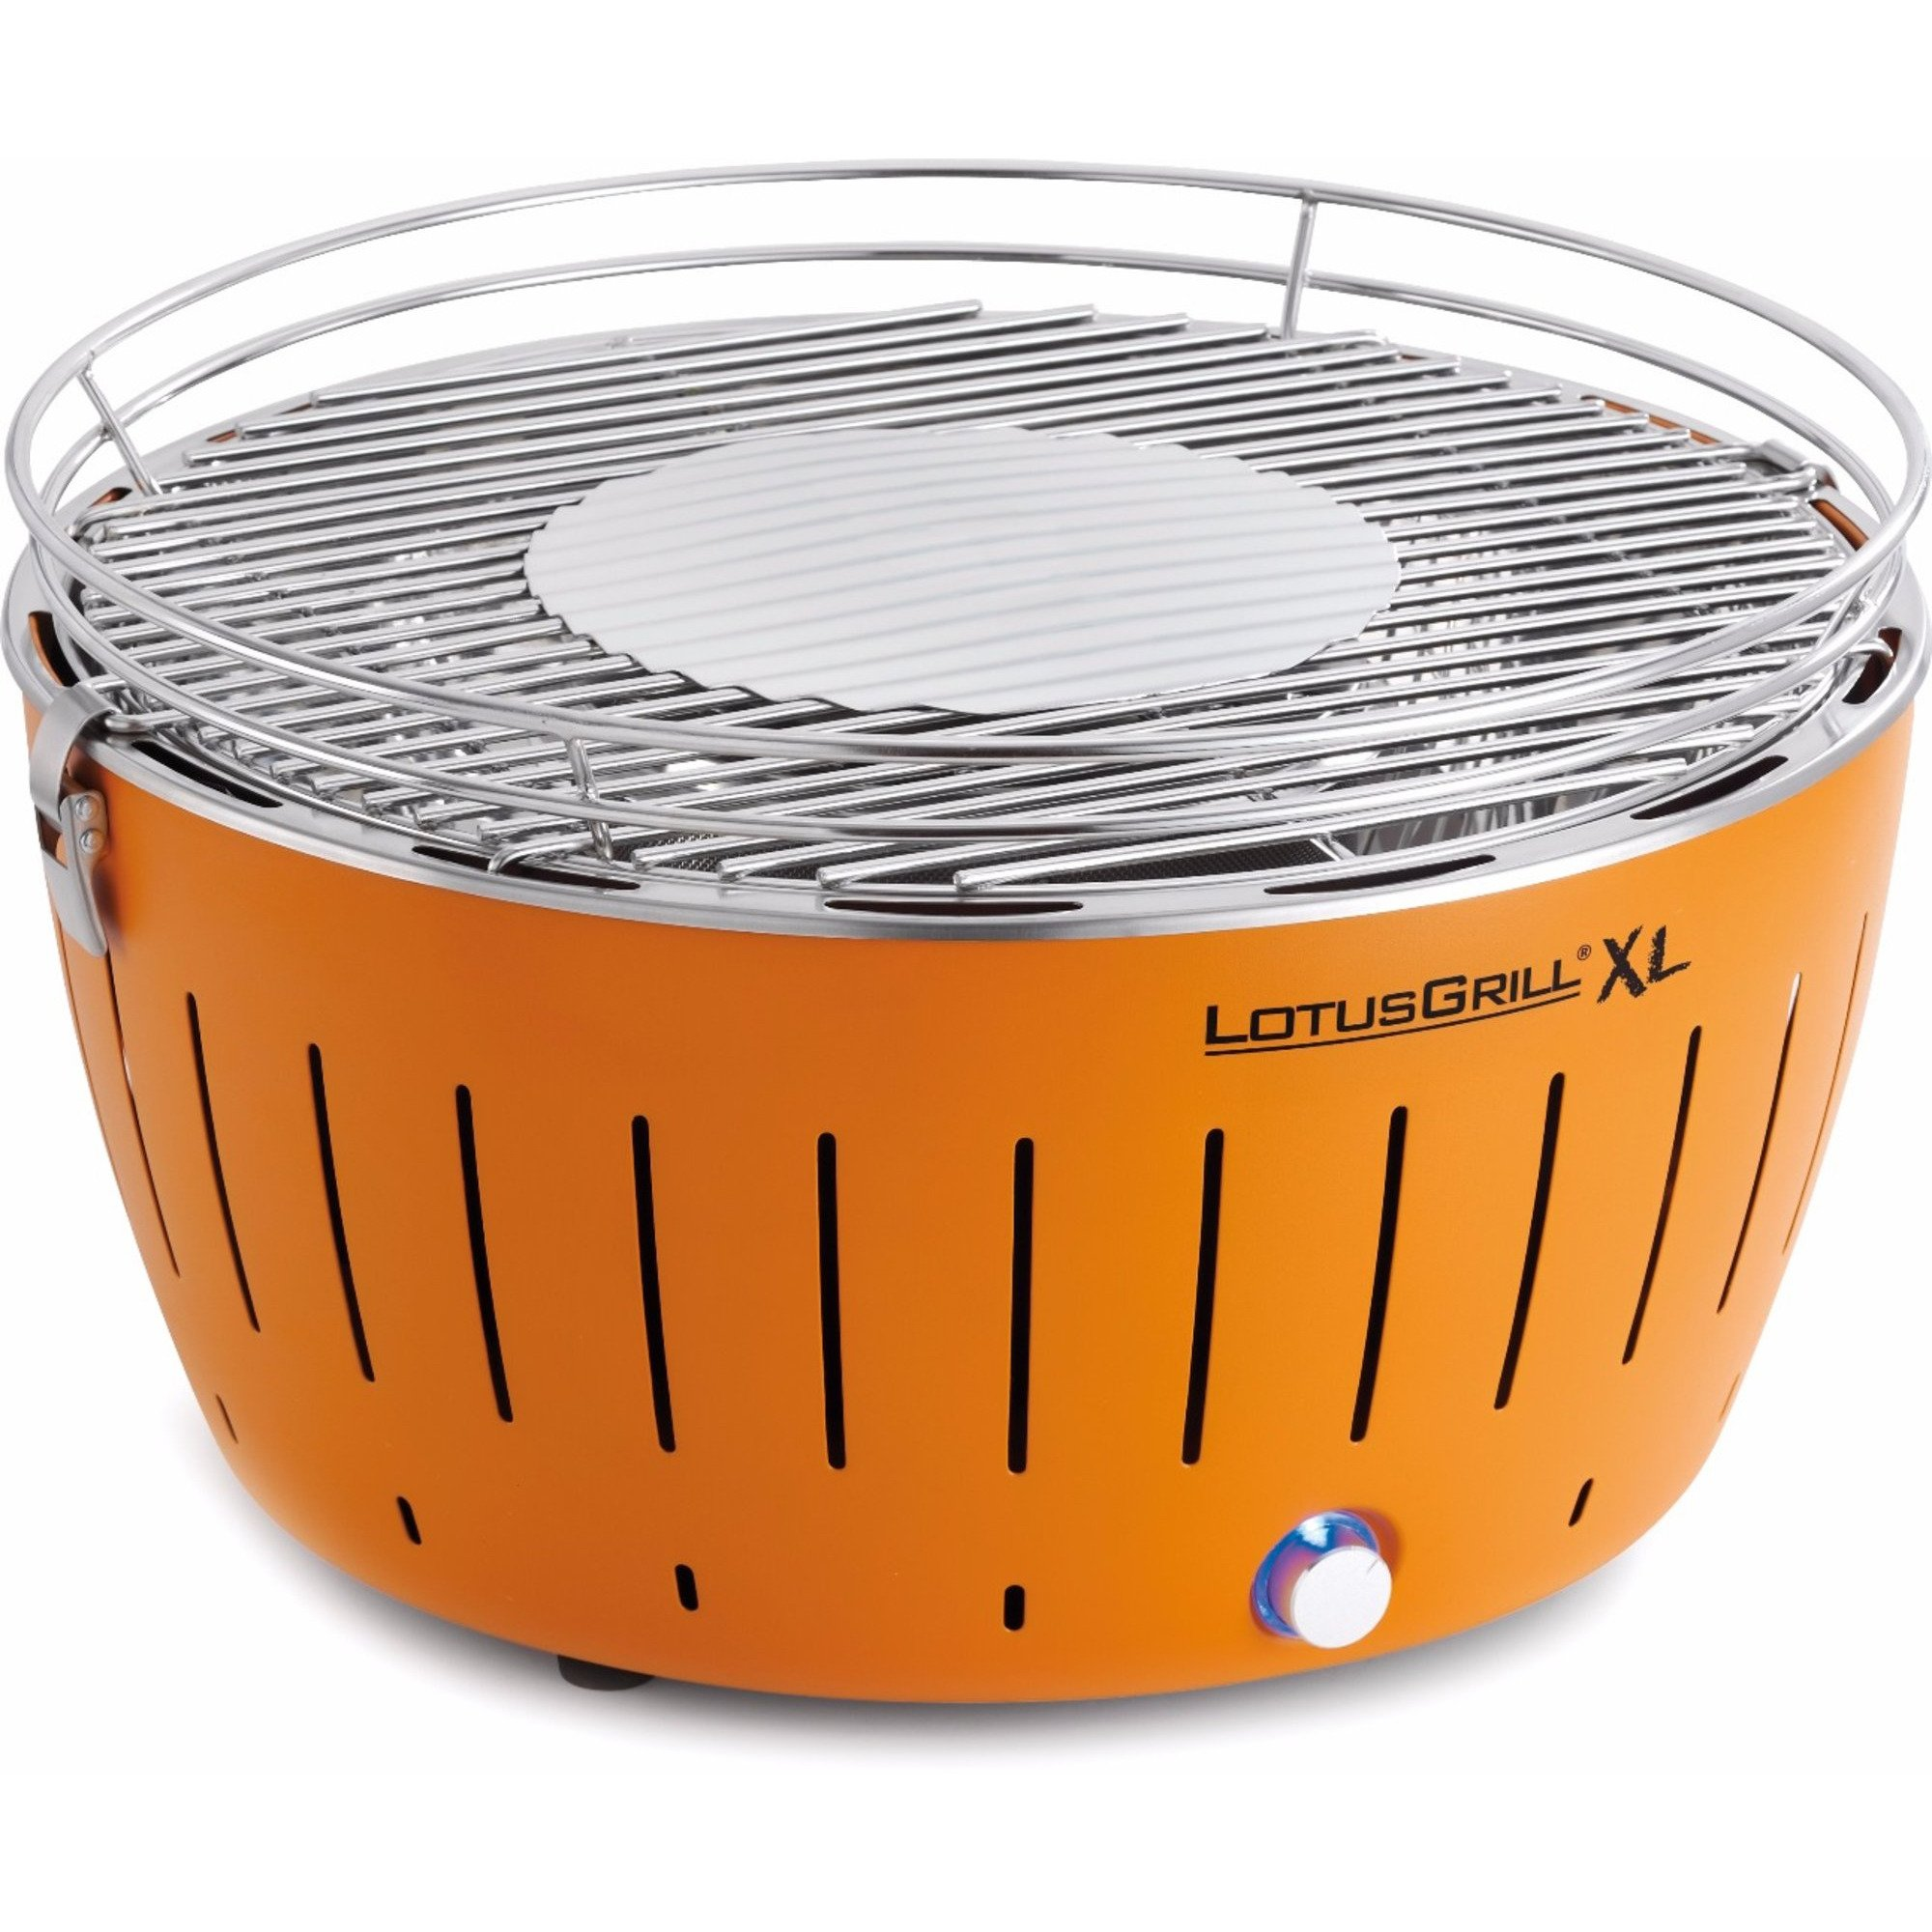 LotusGrill XL Rökfri kolgrill Orange